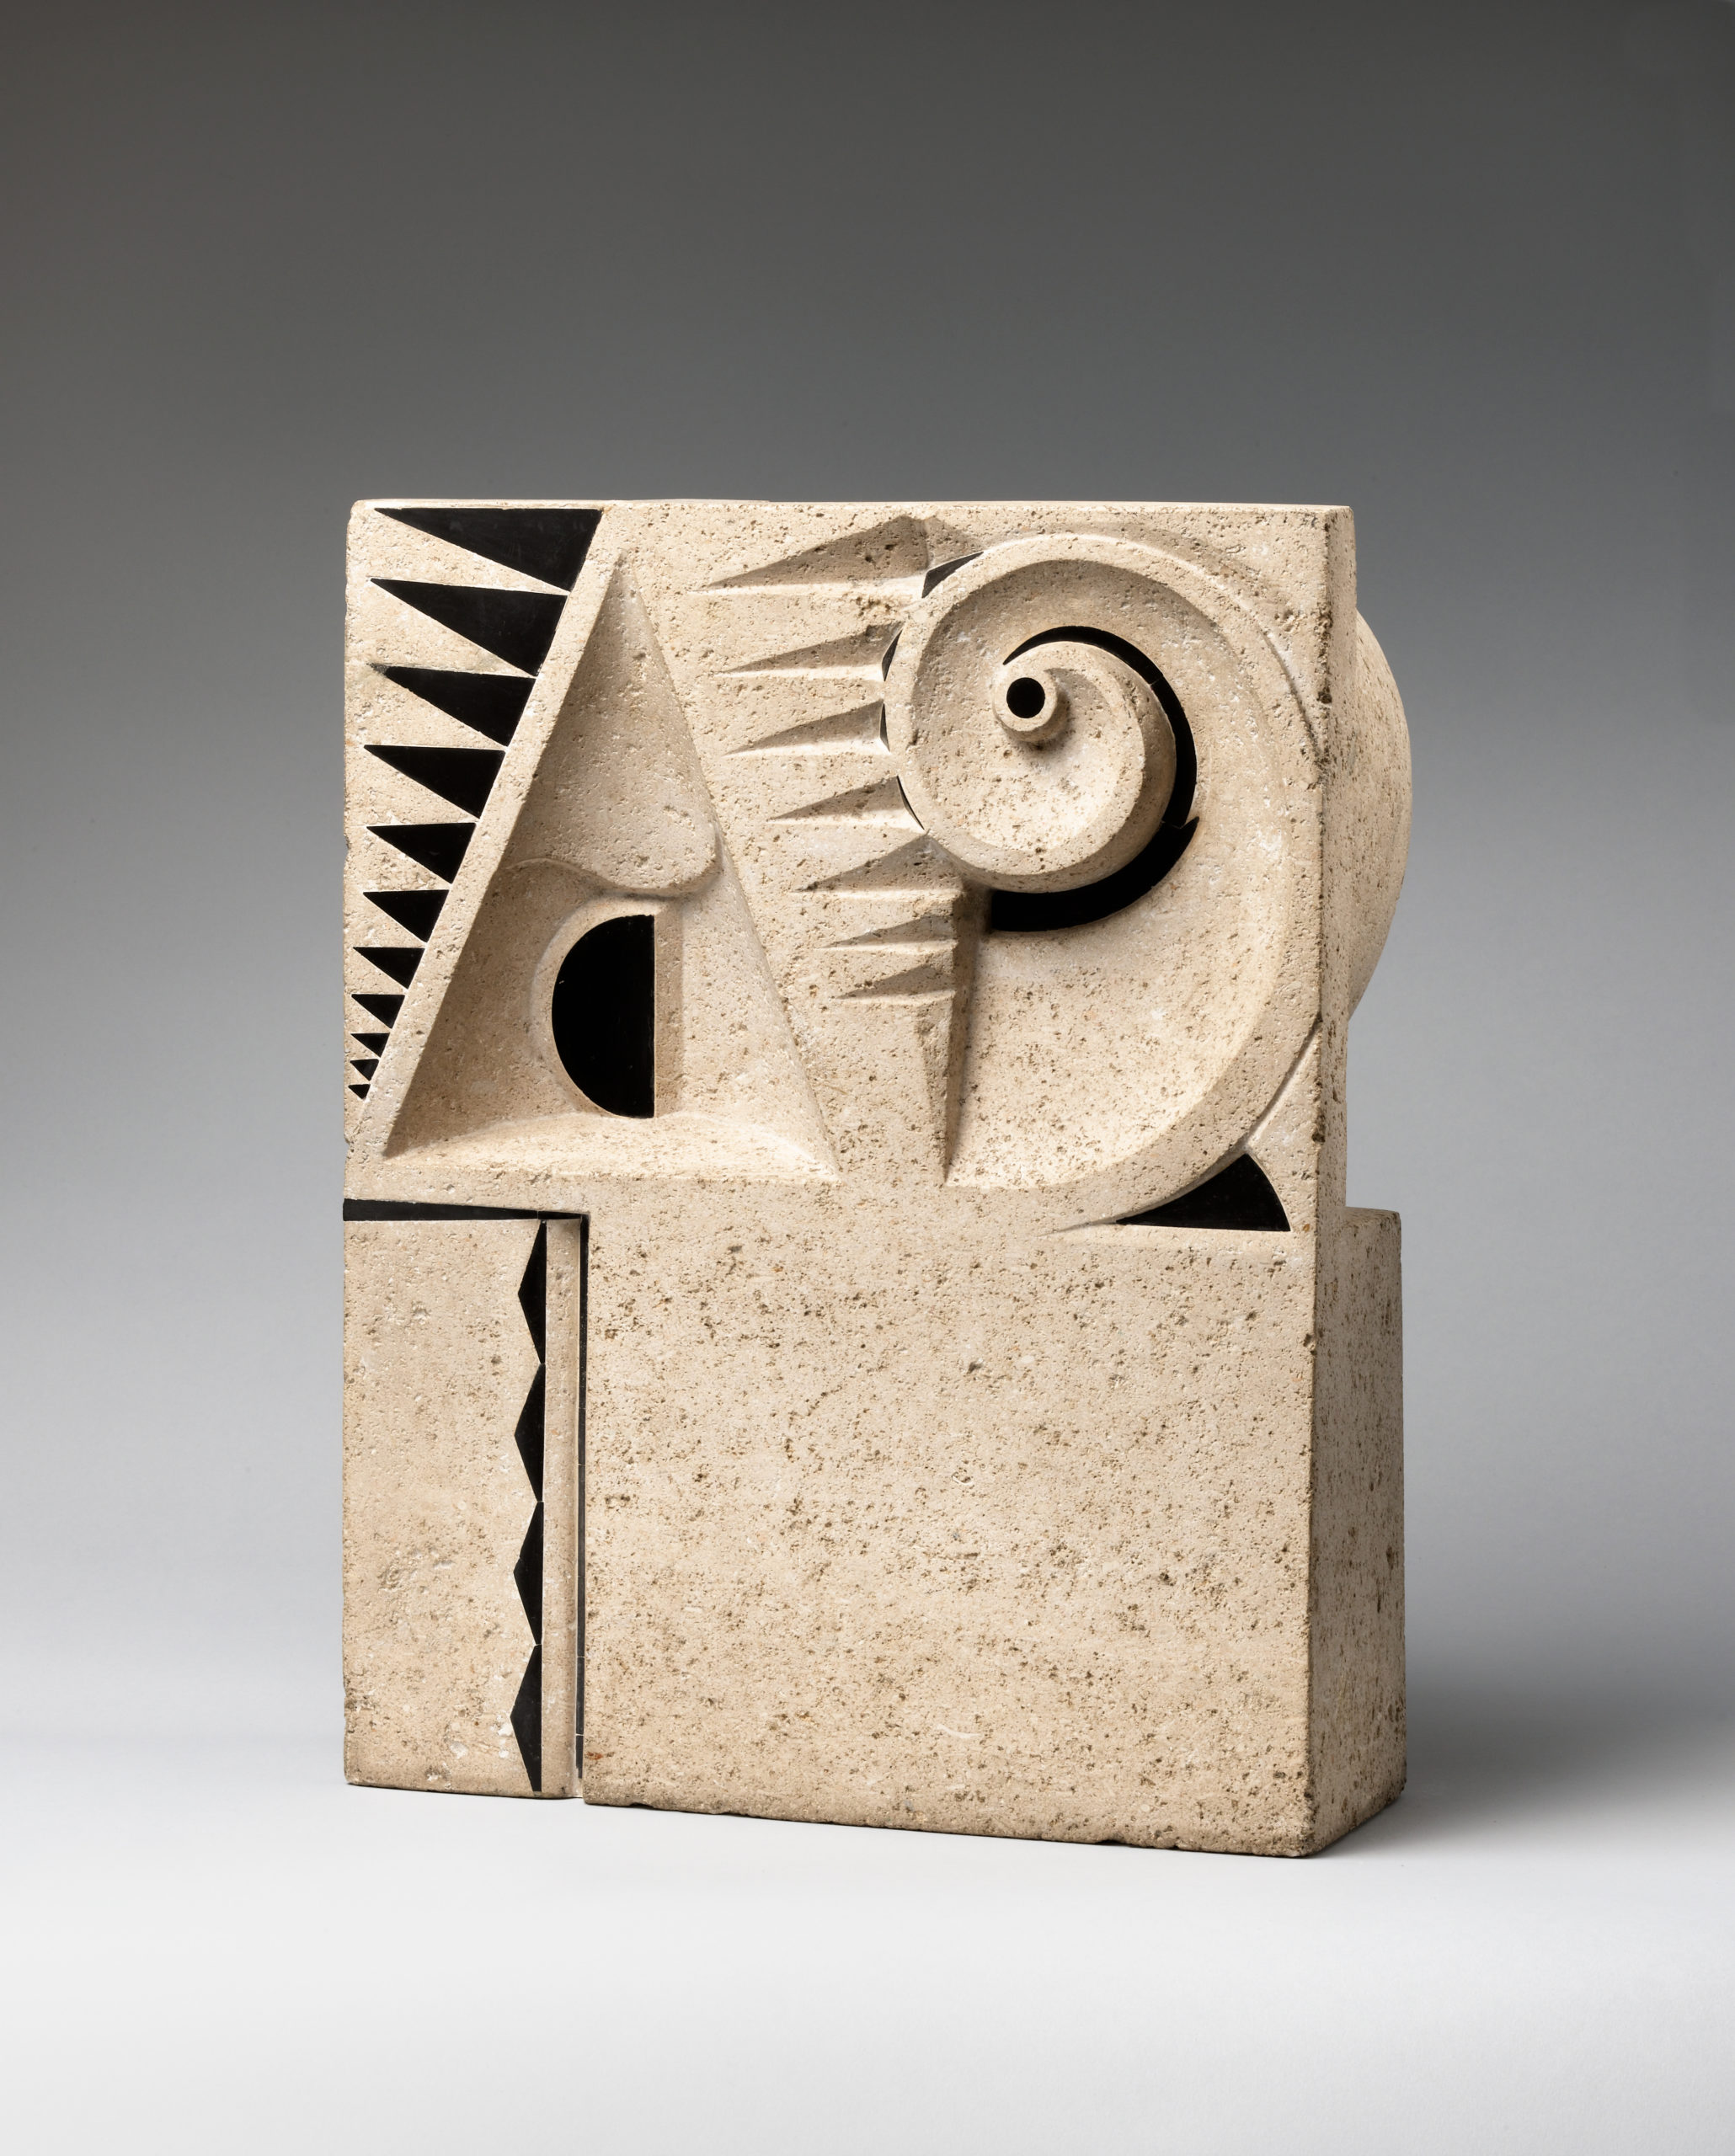 Rectangular limestone block carved with abstractions of geometric shapes, inlay of black stone in triangular patterns, and a spiral that loops at the top-right corner.